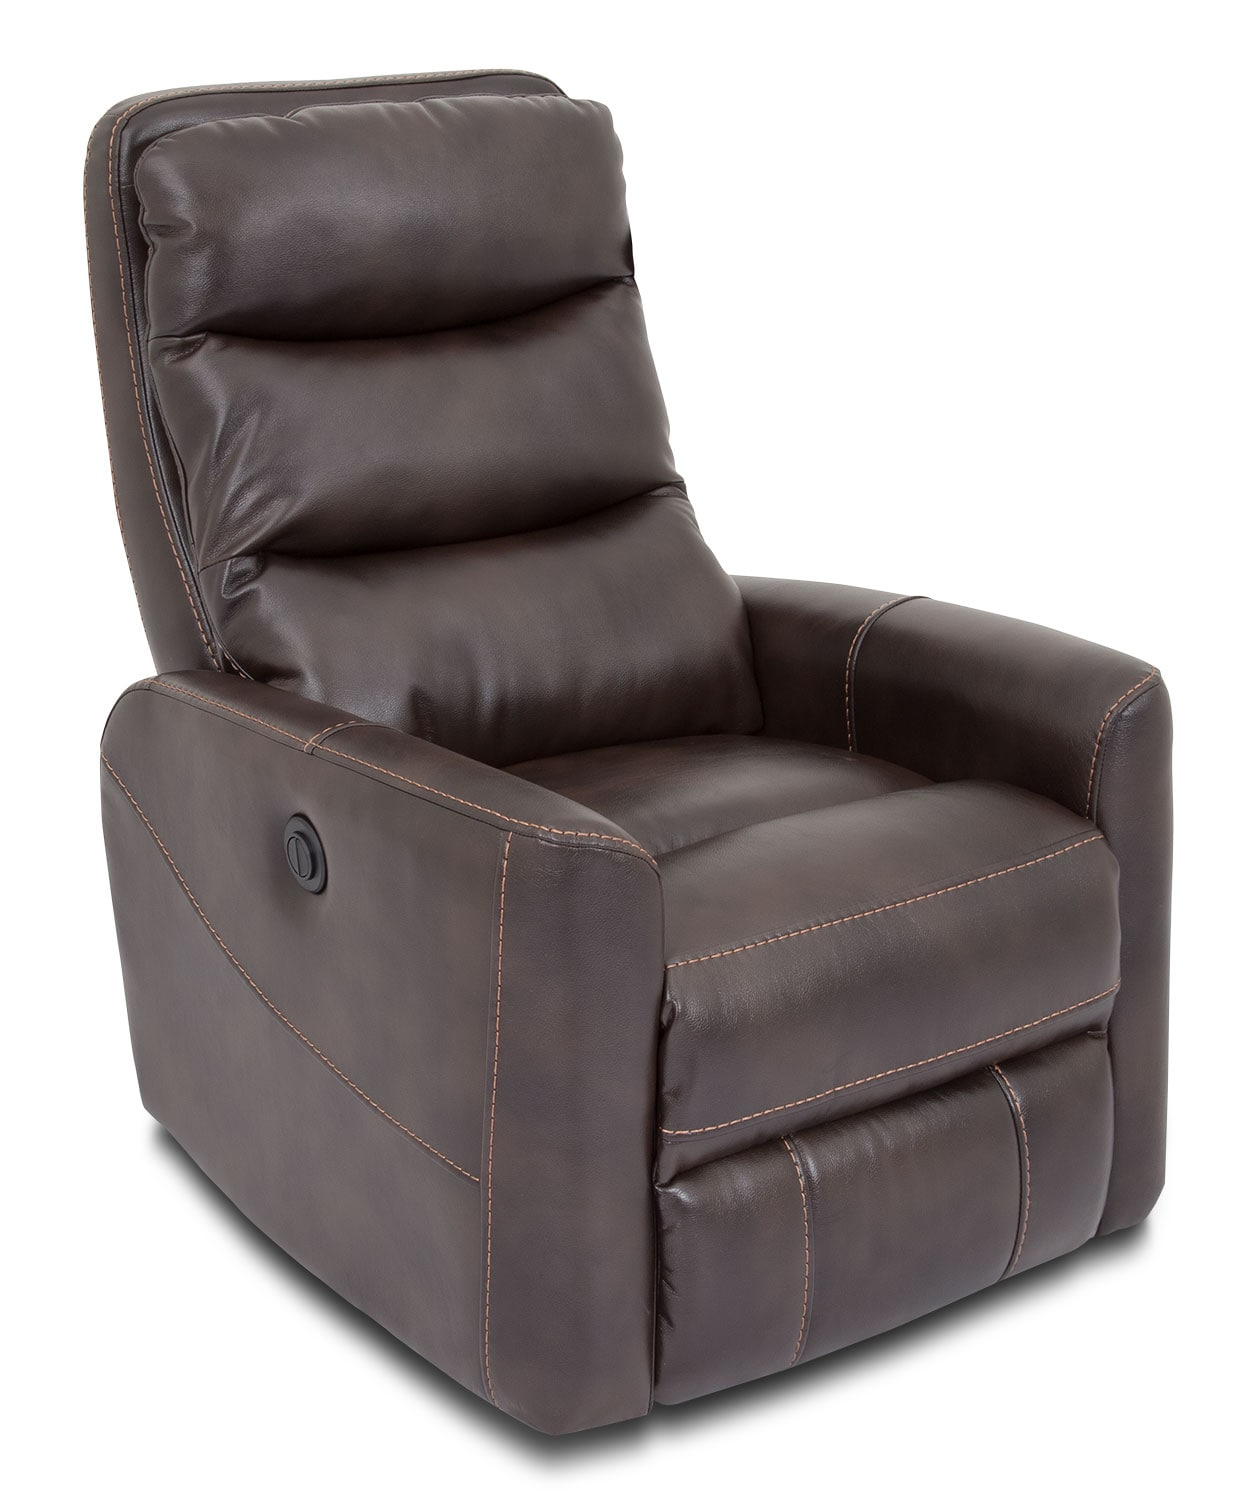 Quinn Leather-Look Fabric Power Recliner – Brown